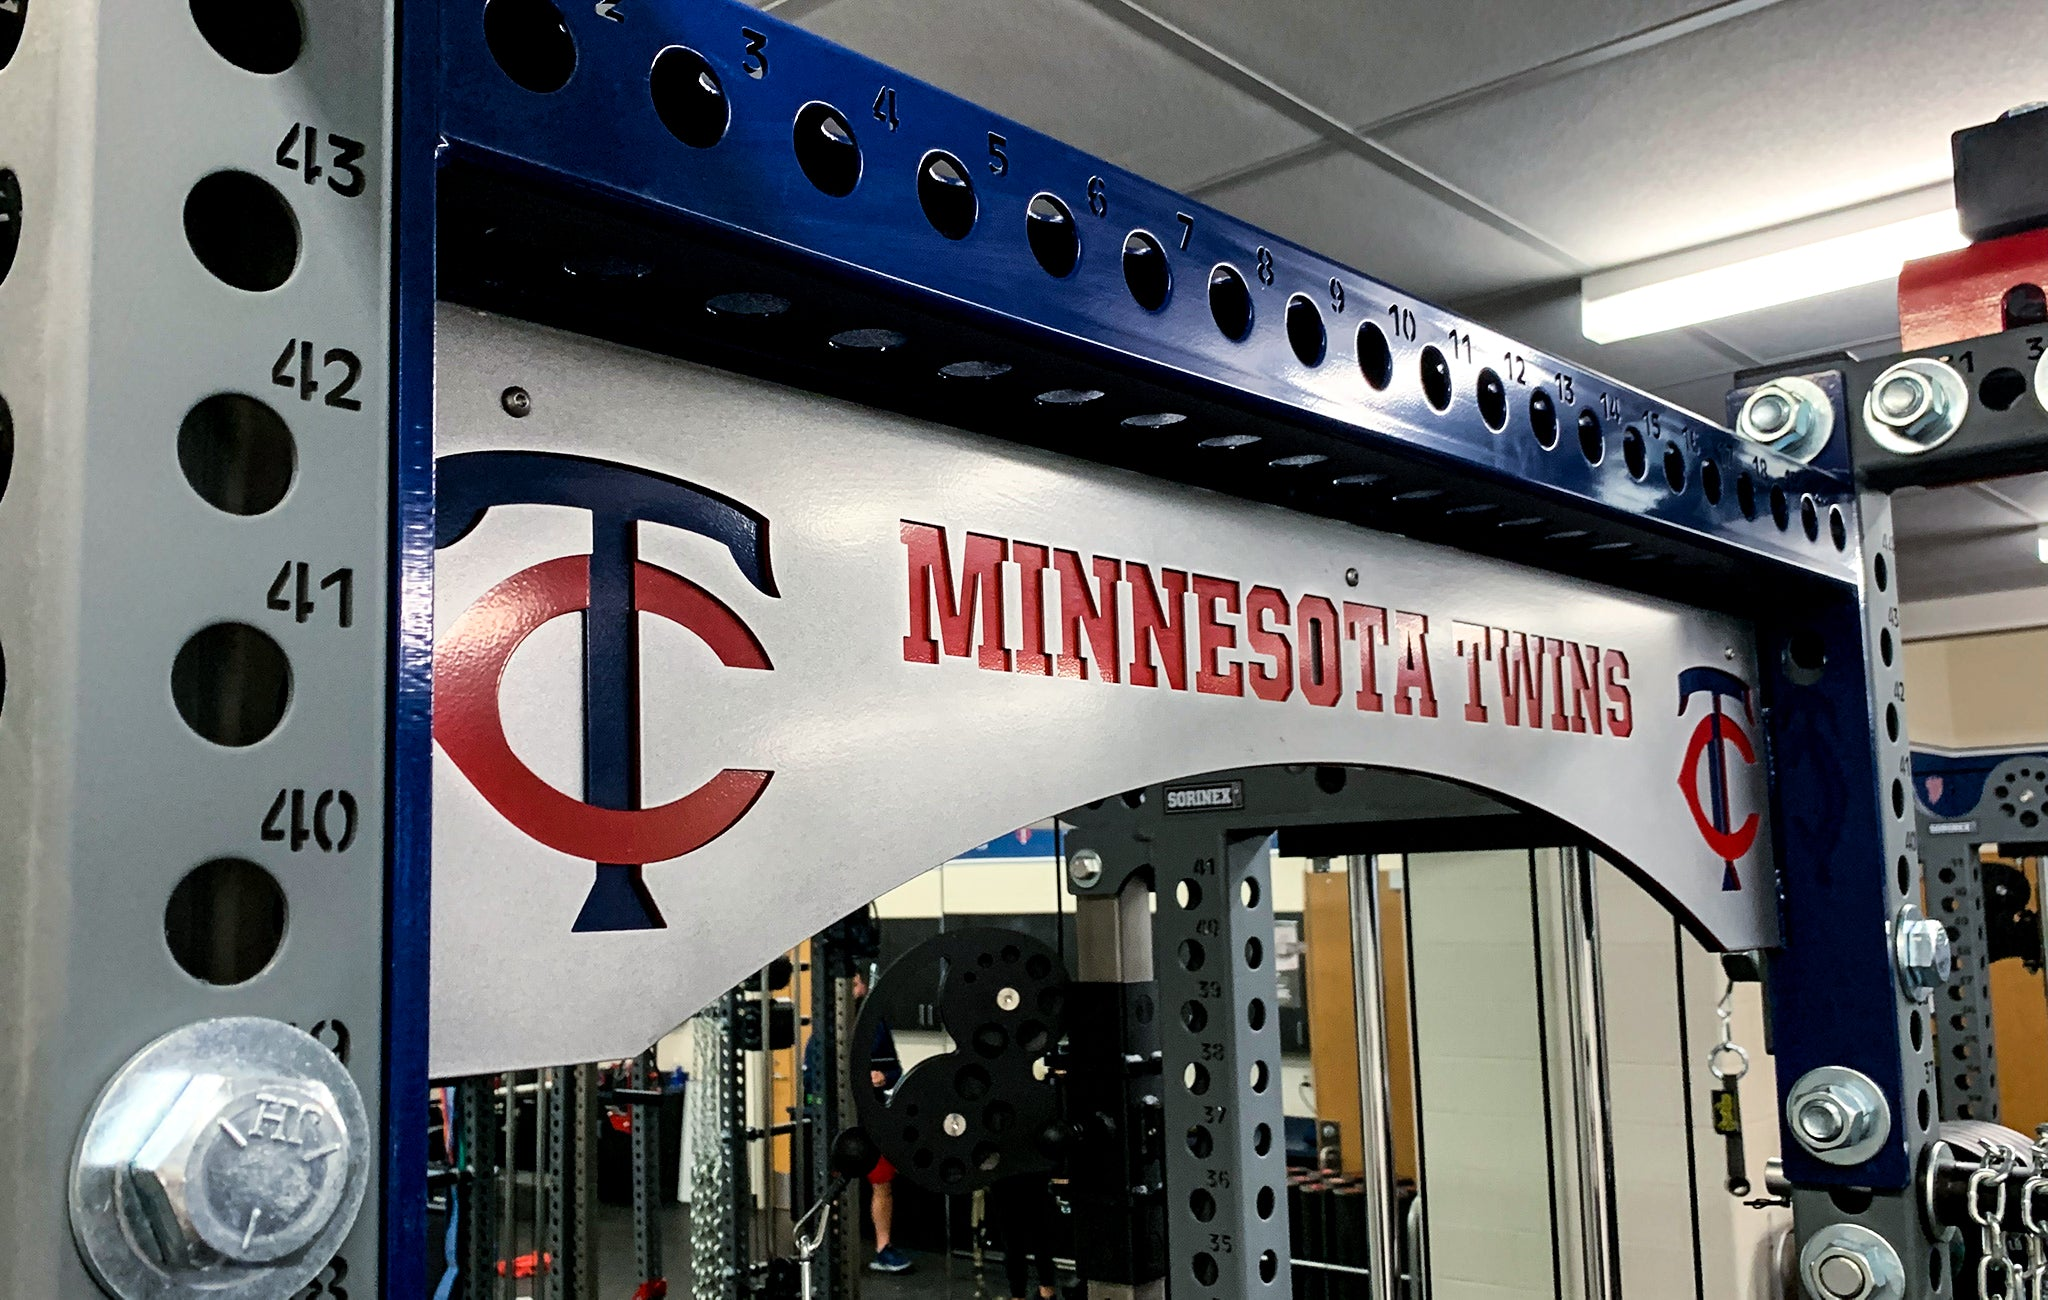 Minnesota Twins strength training